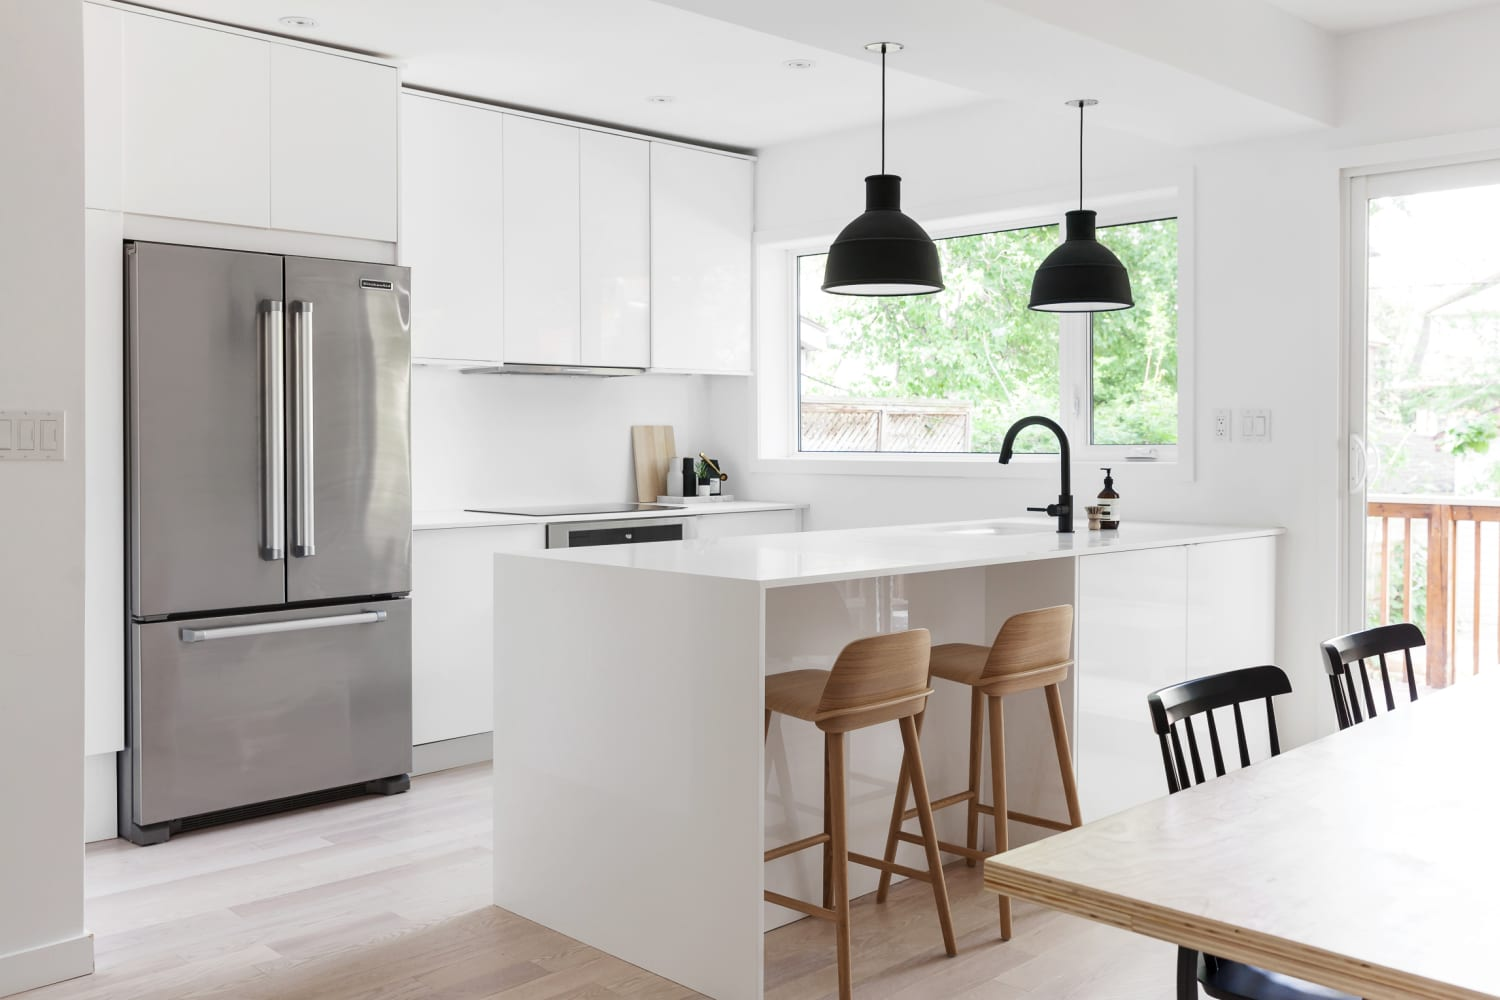 The 10 Commandments of Minimalist Kitchens